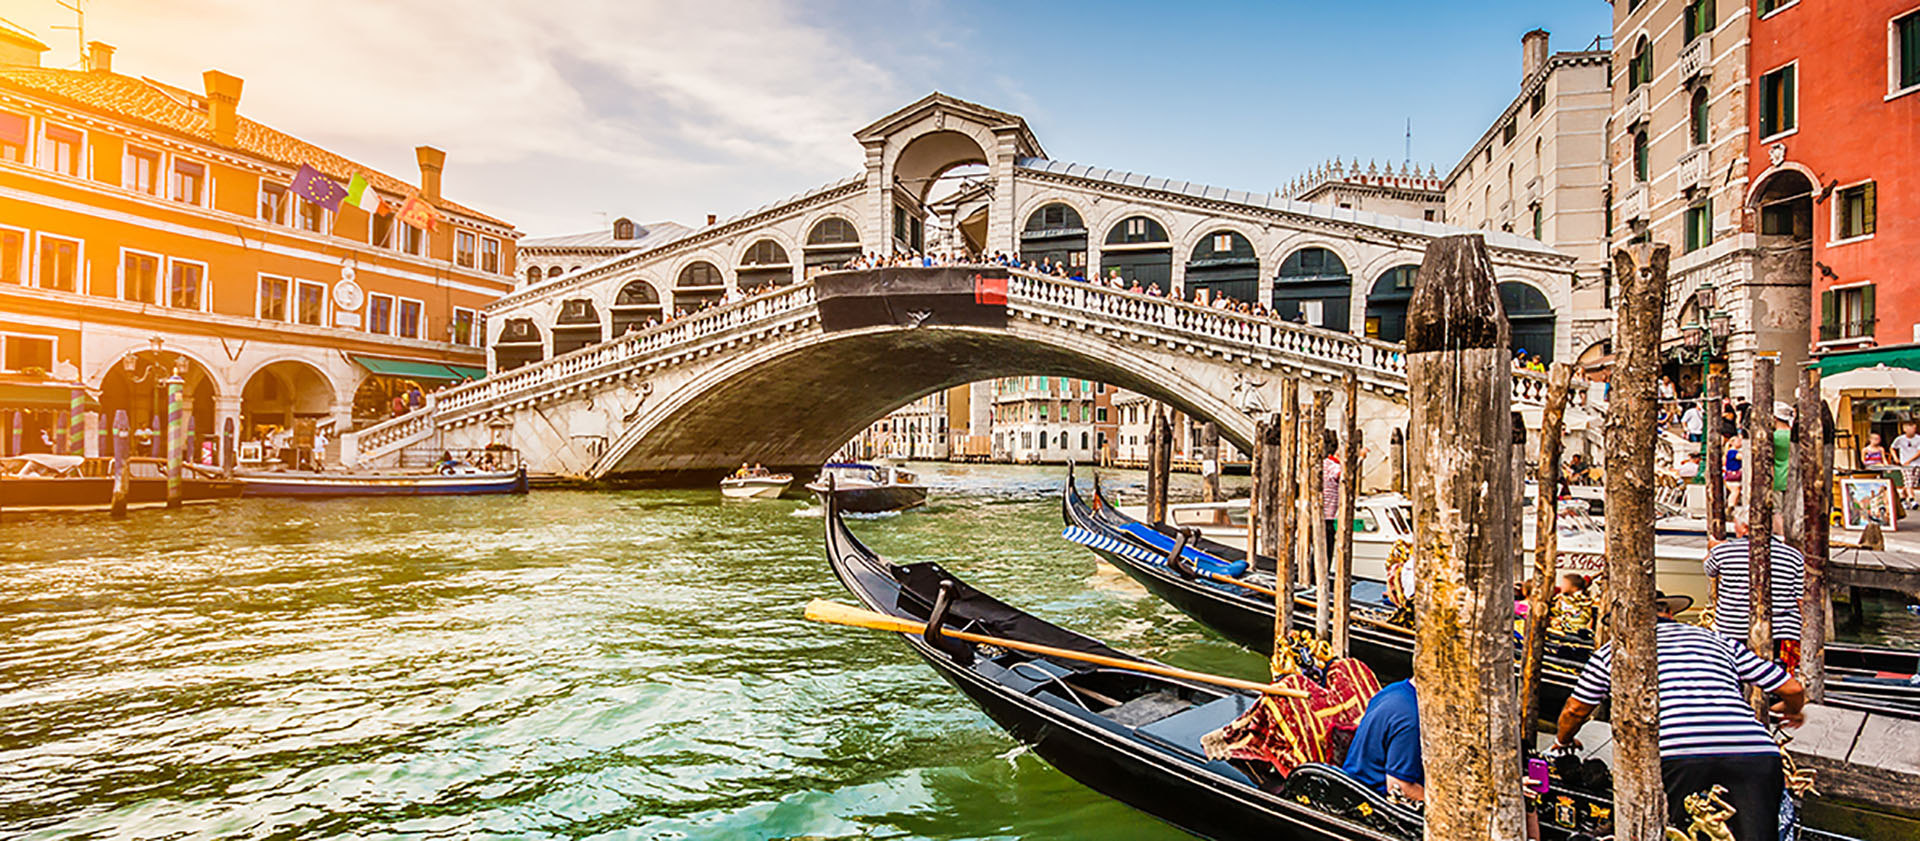 Bridge over a Canal in Venice, Italy